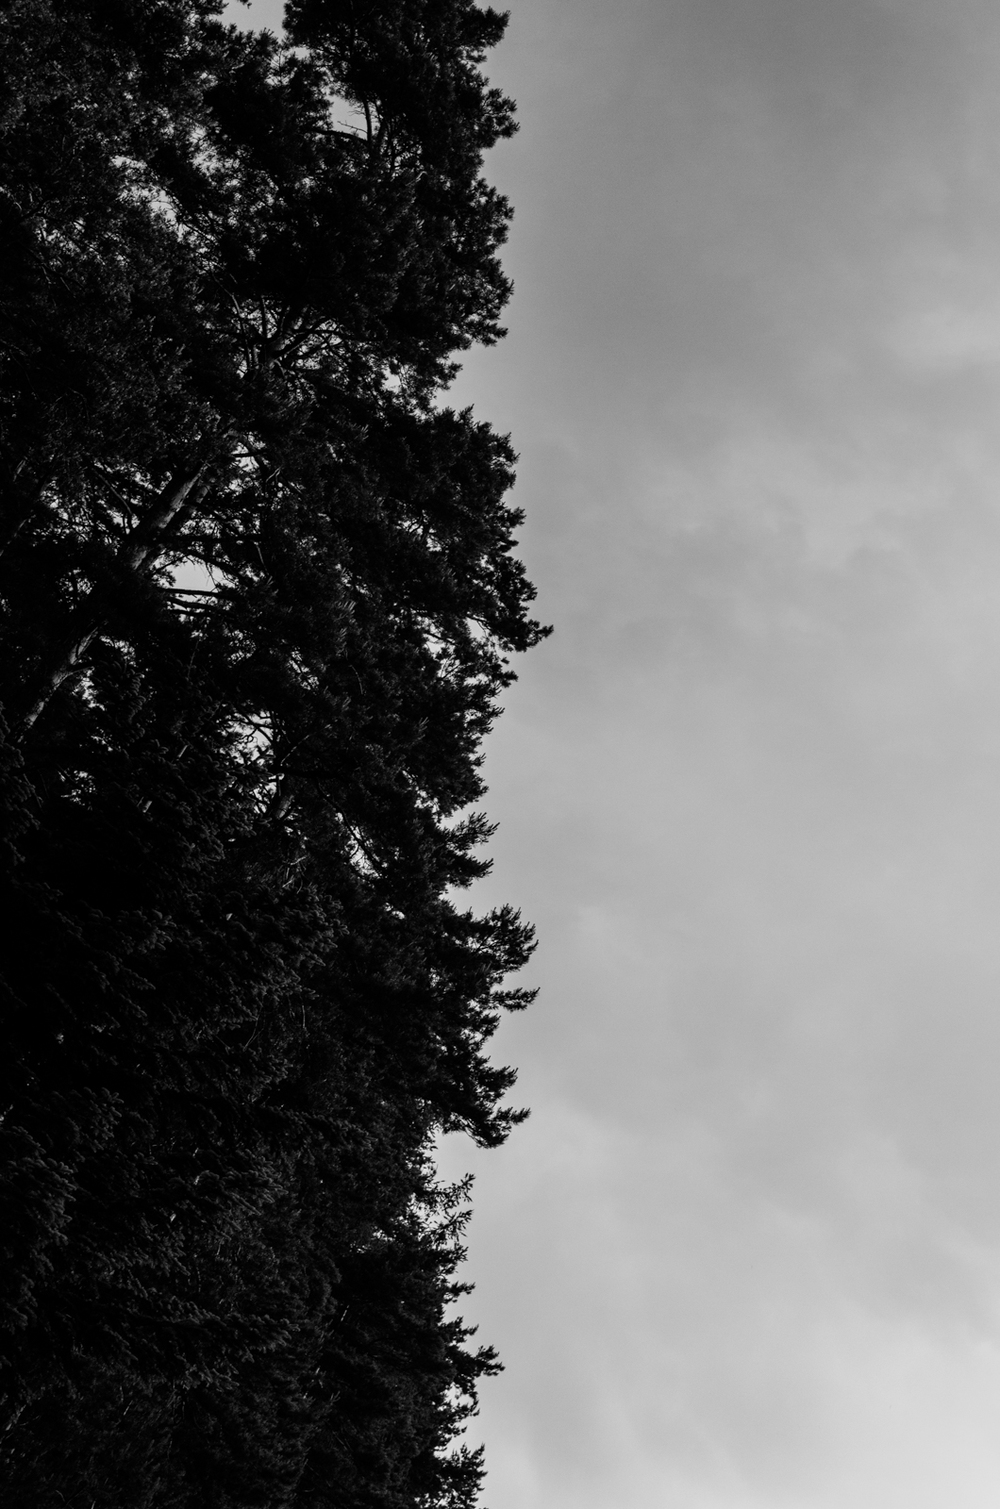 Project 365: #144 - Cloudy Trees